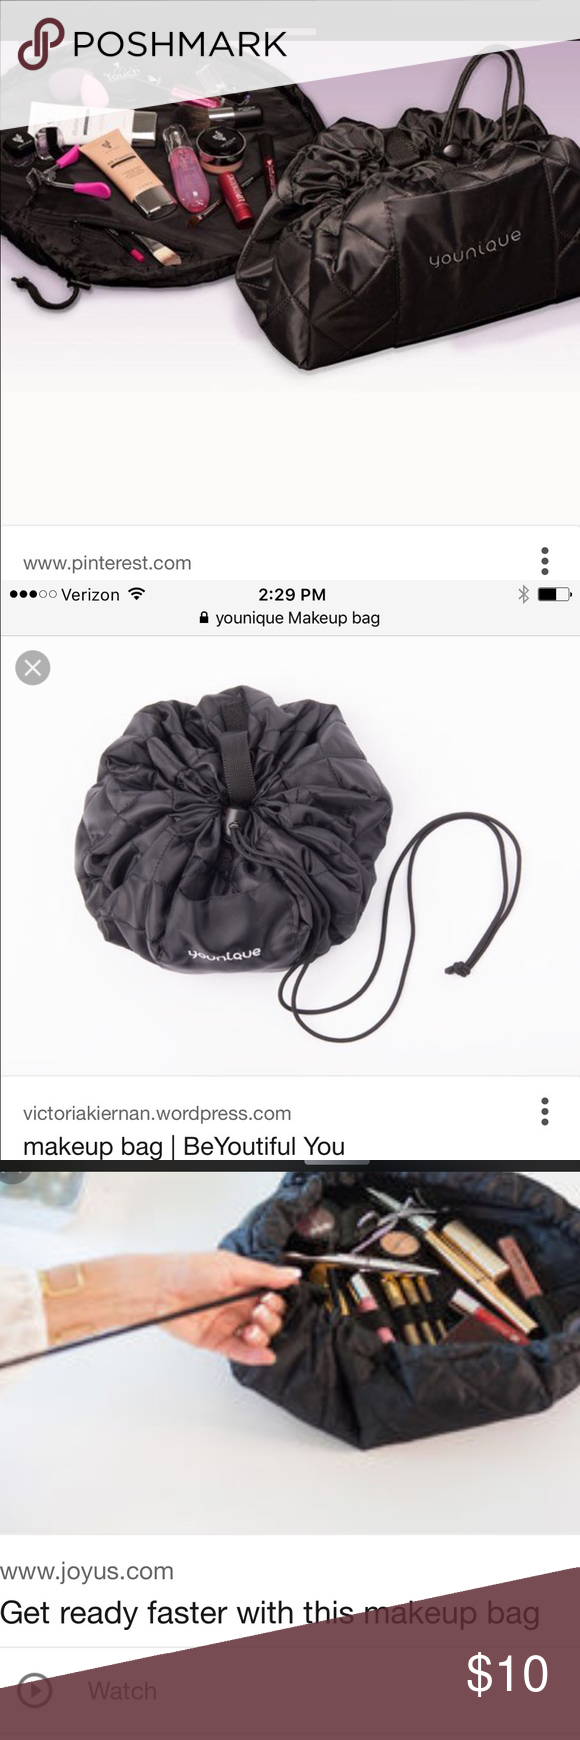 Younique Drawstring Makeup Bag New in Package Makeup not